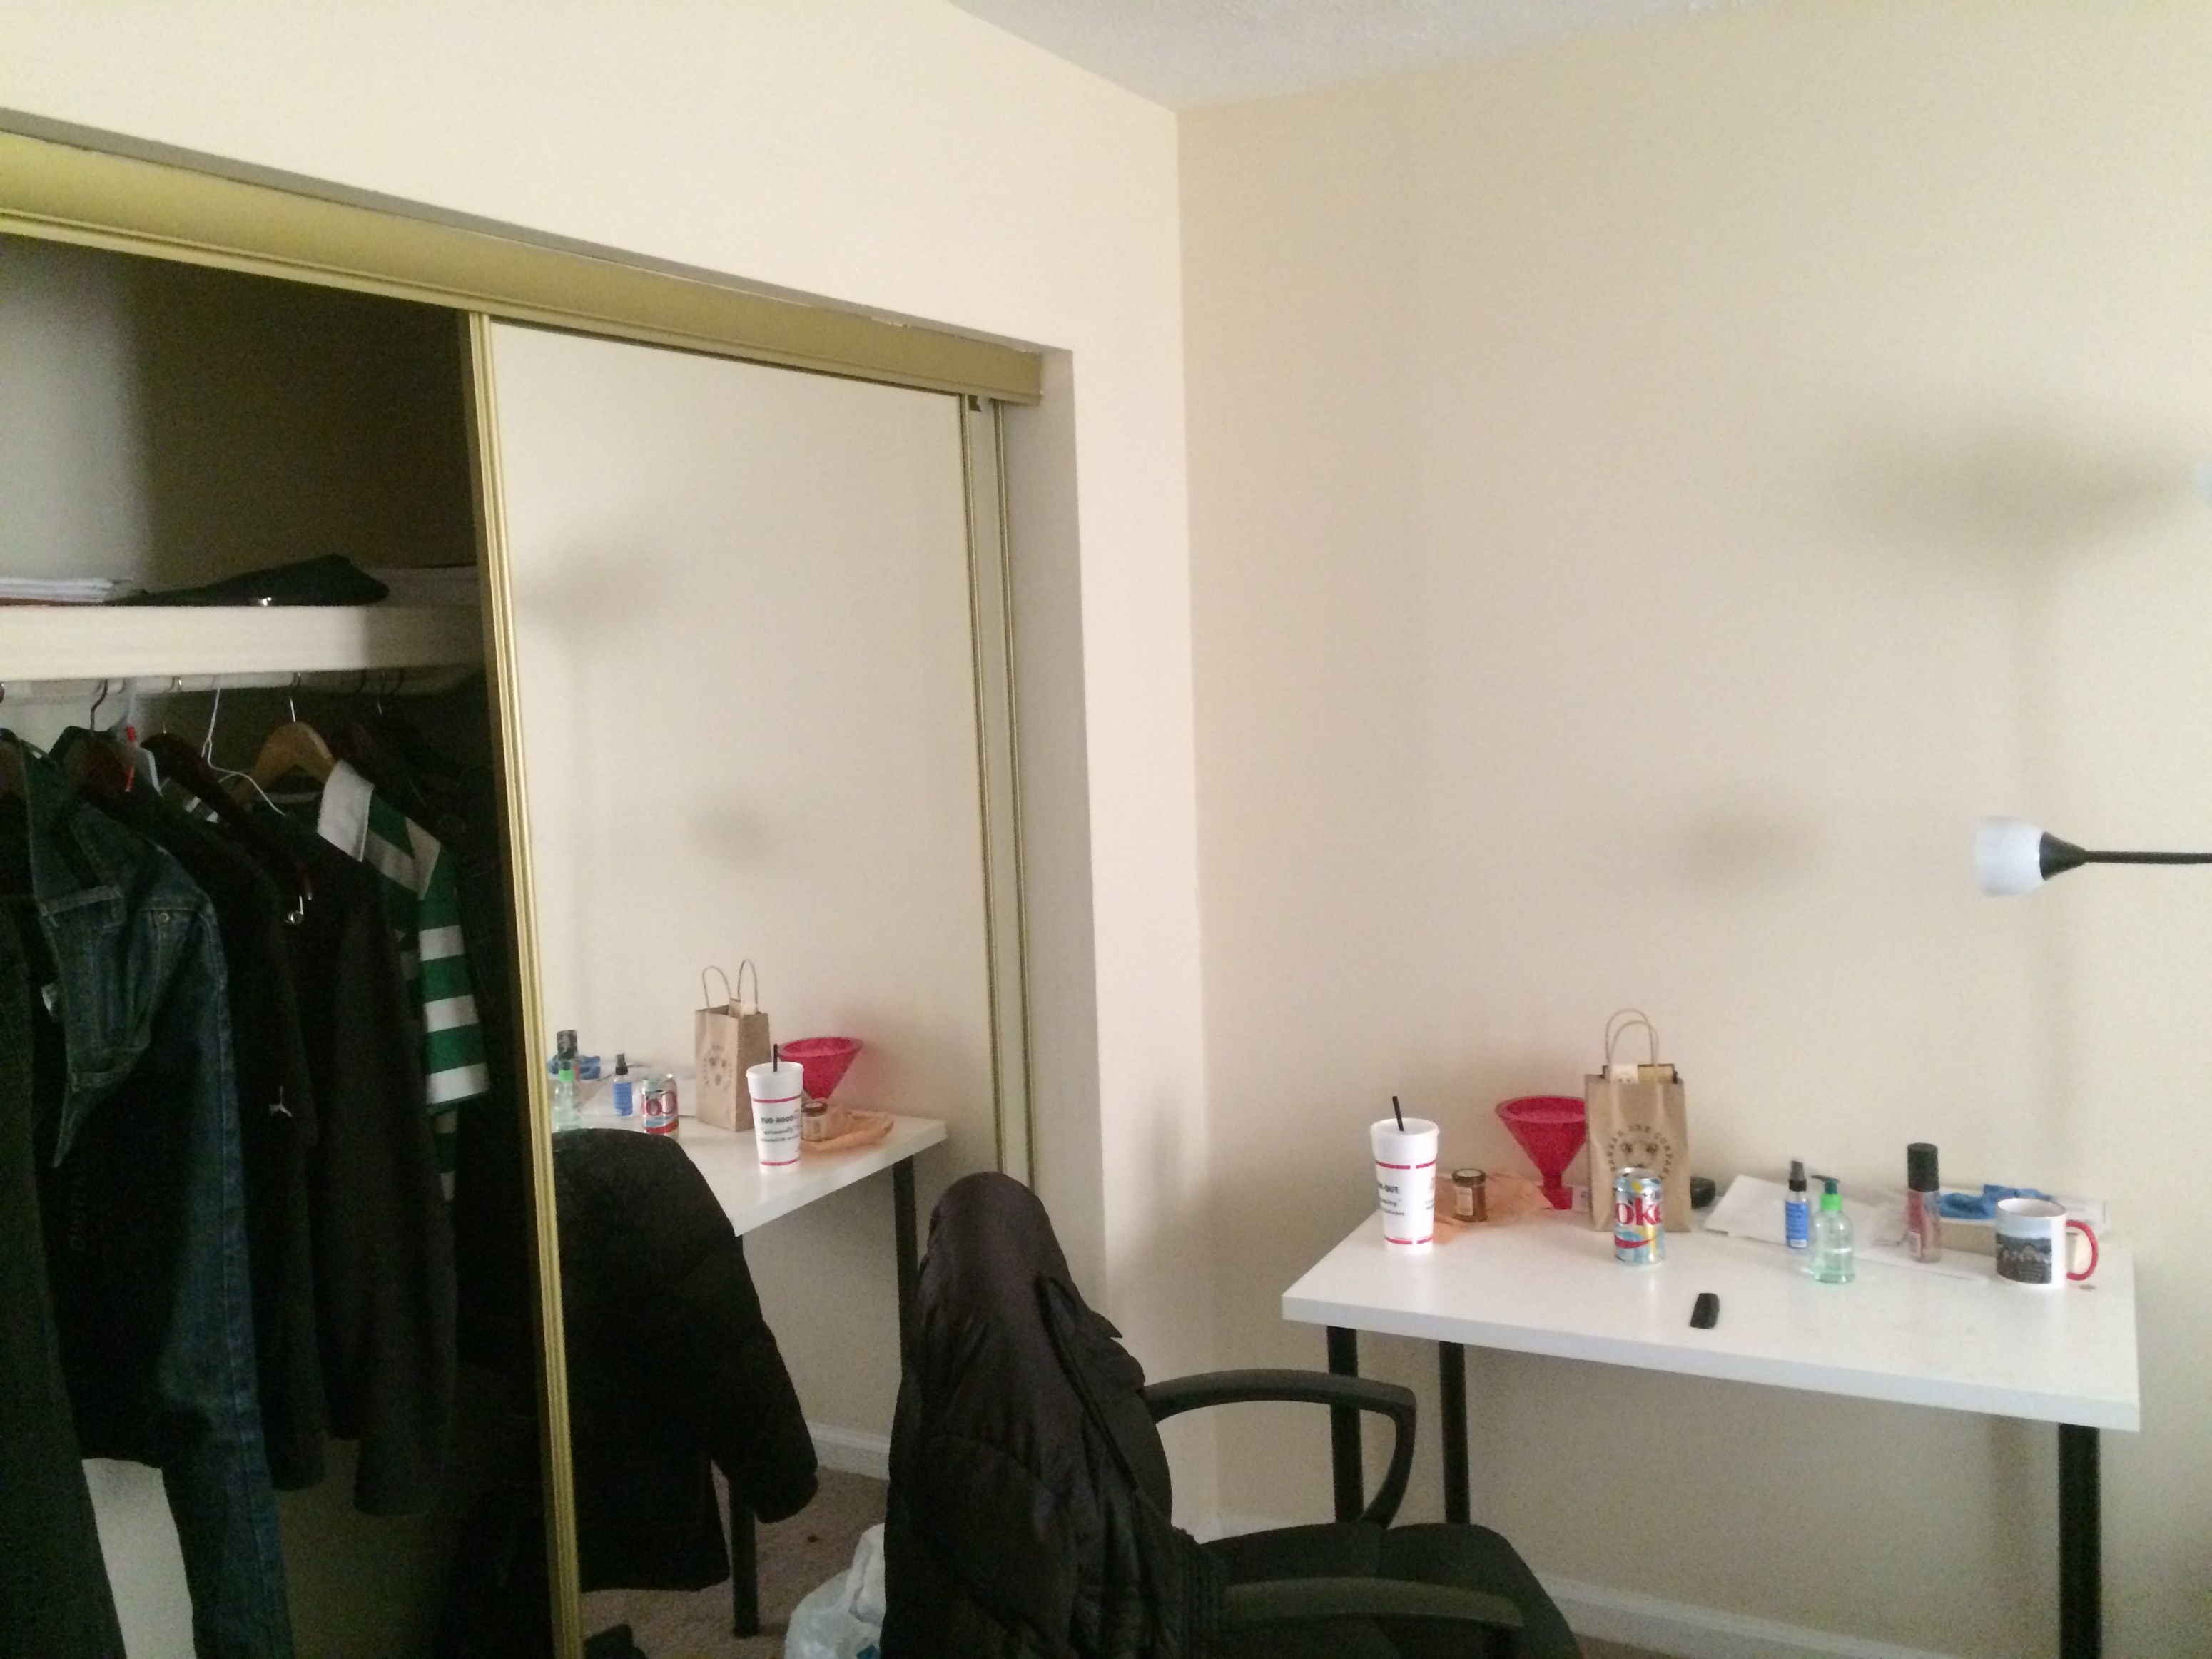 Rooms For Rent Near Norcross Ga